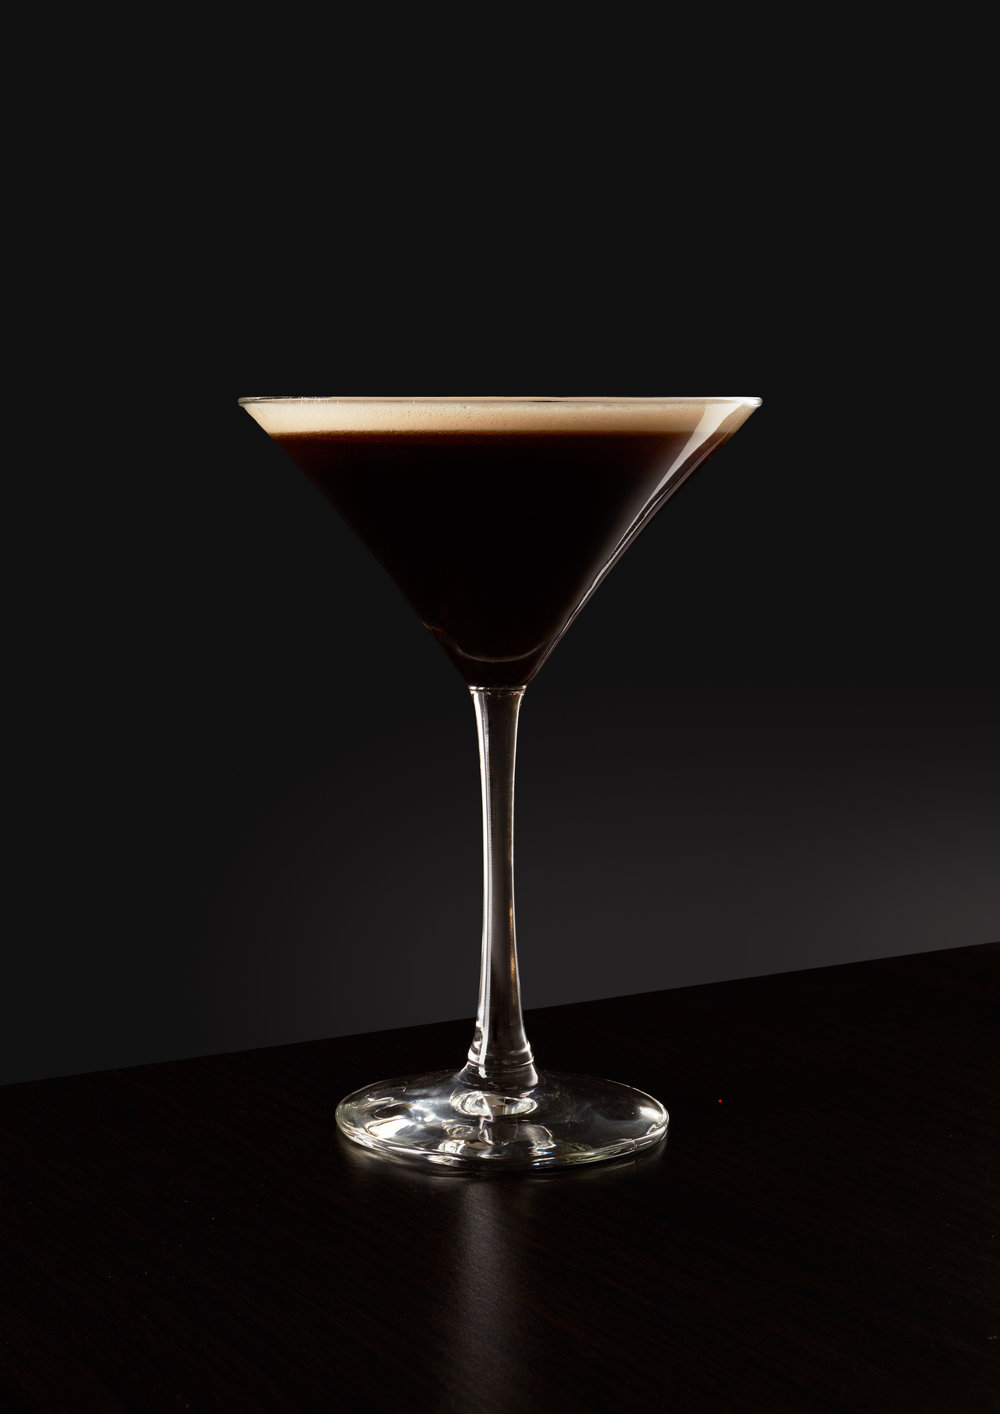 The Toasted Porter Martini